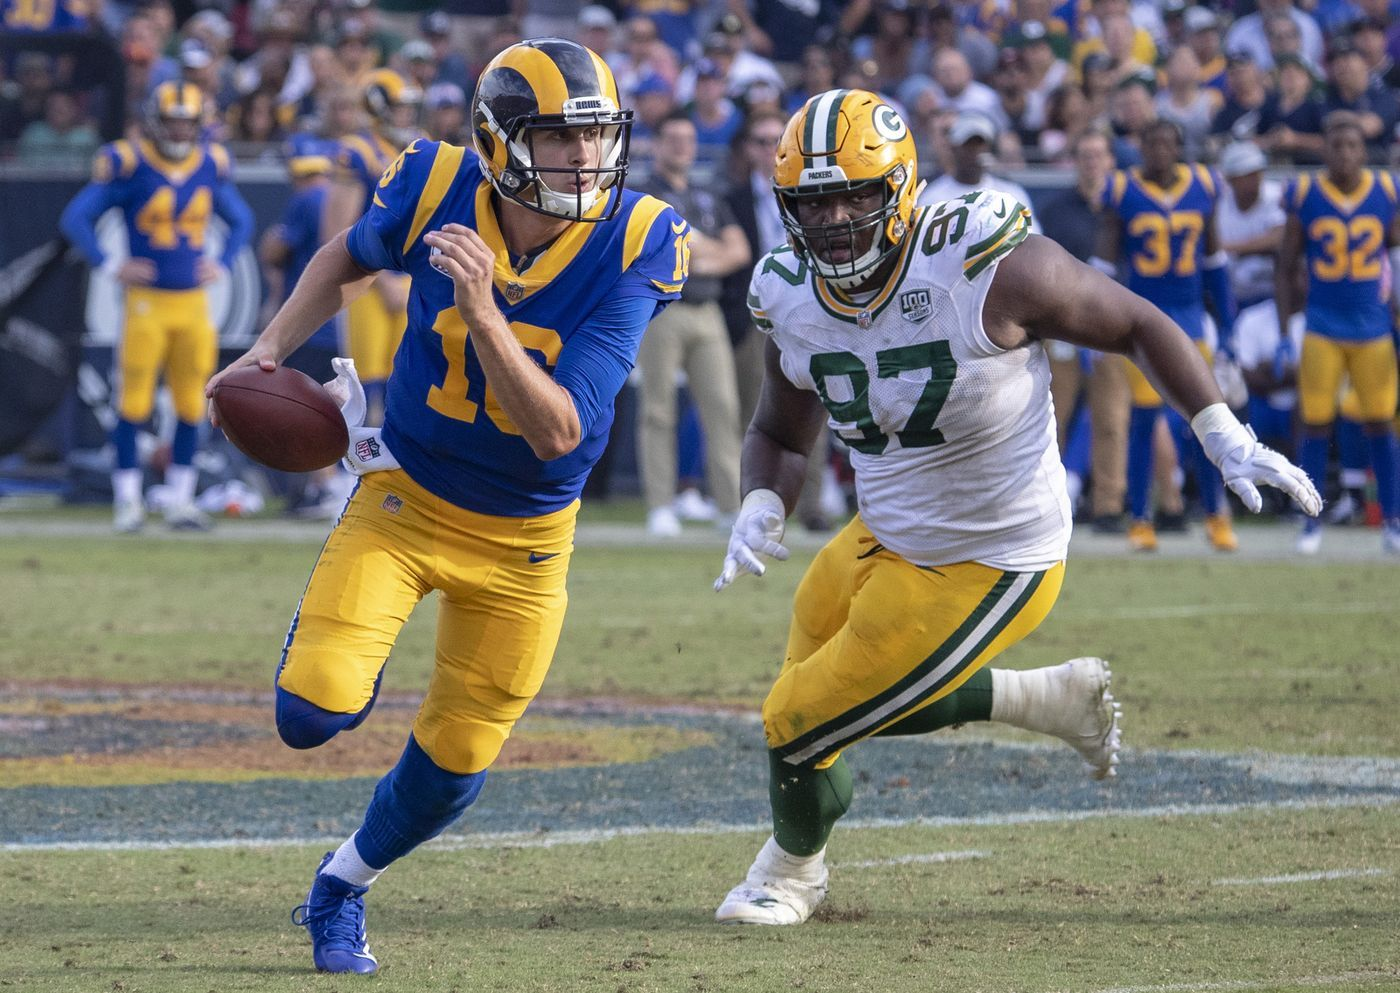 Jared Goff And Rams Outduel Aaron Rodgers And Packers For A 29 27 Victory With Images Rams Football Aaron Rodgers Jared Goff